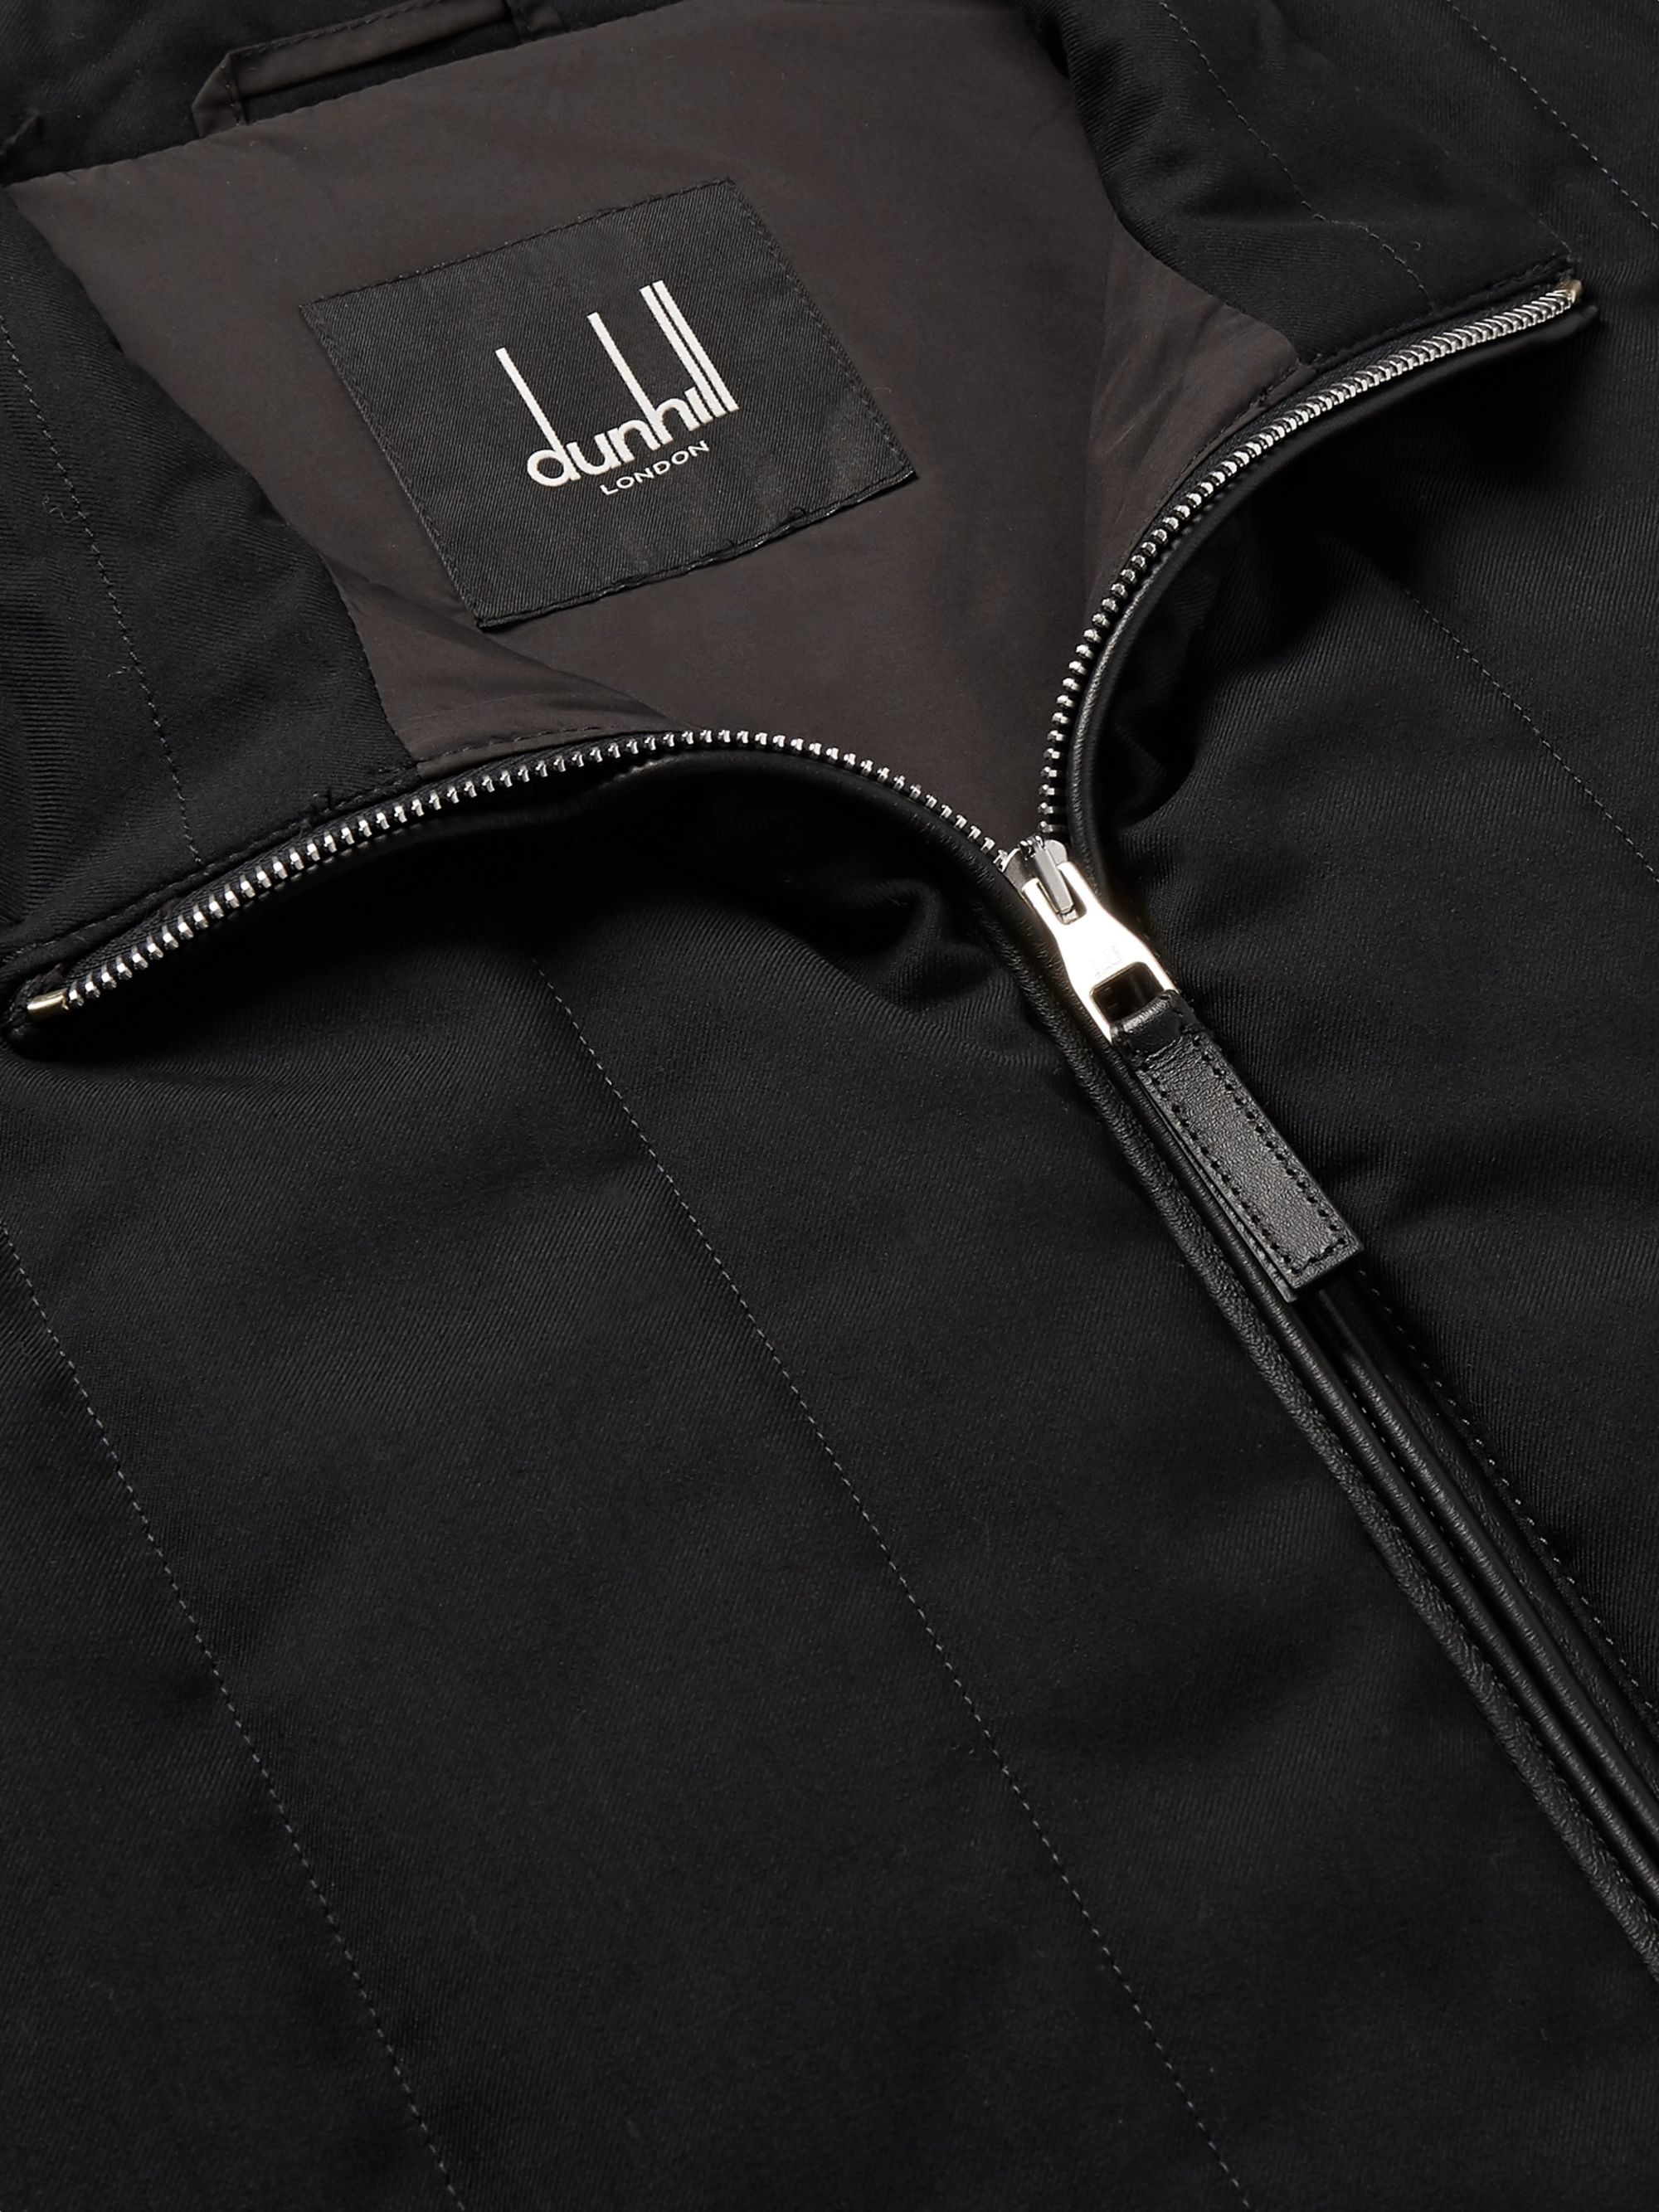 Dunhill Quilted Cashmere Gilet